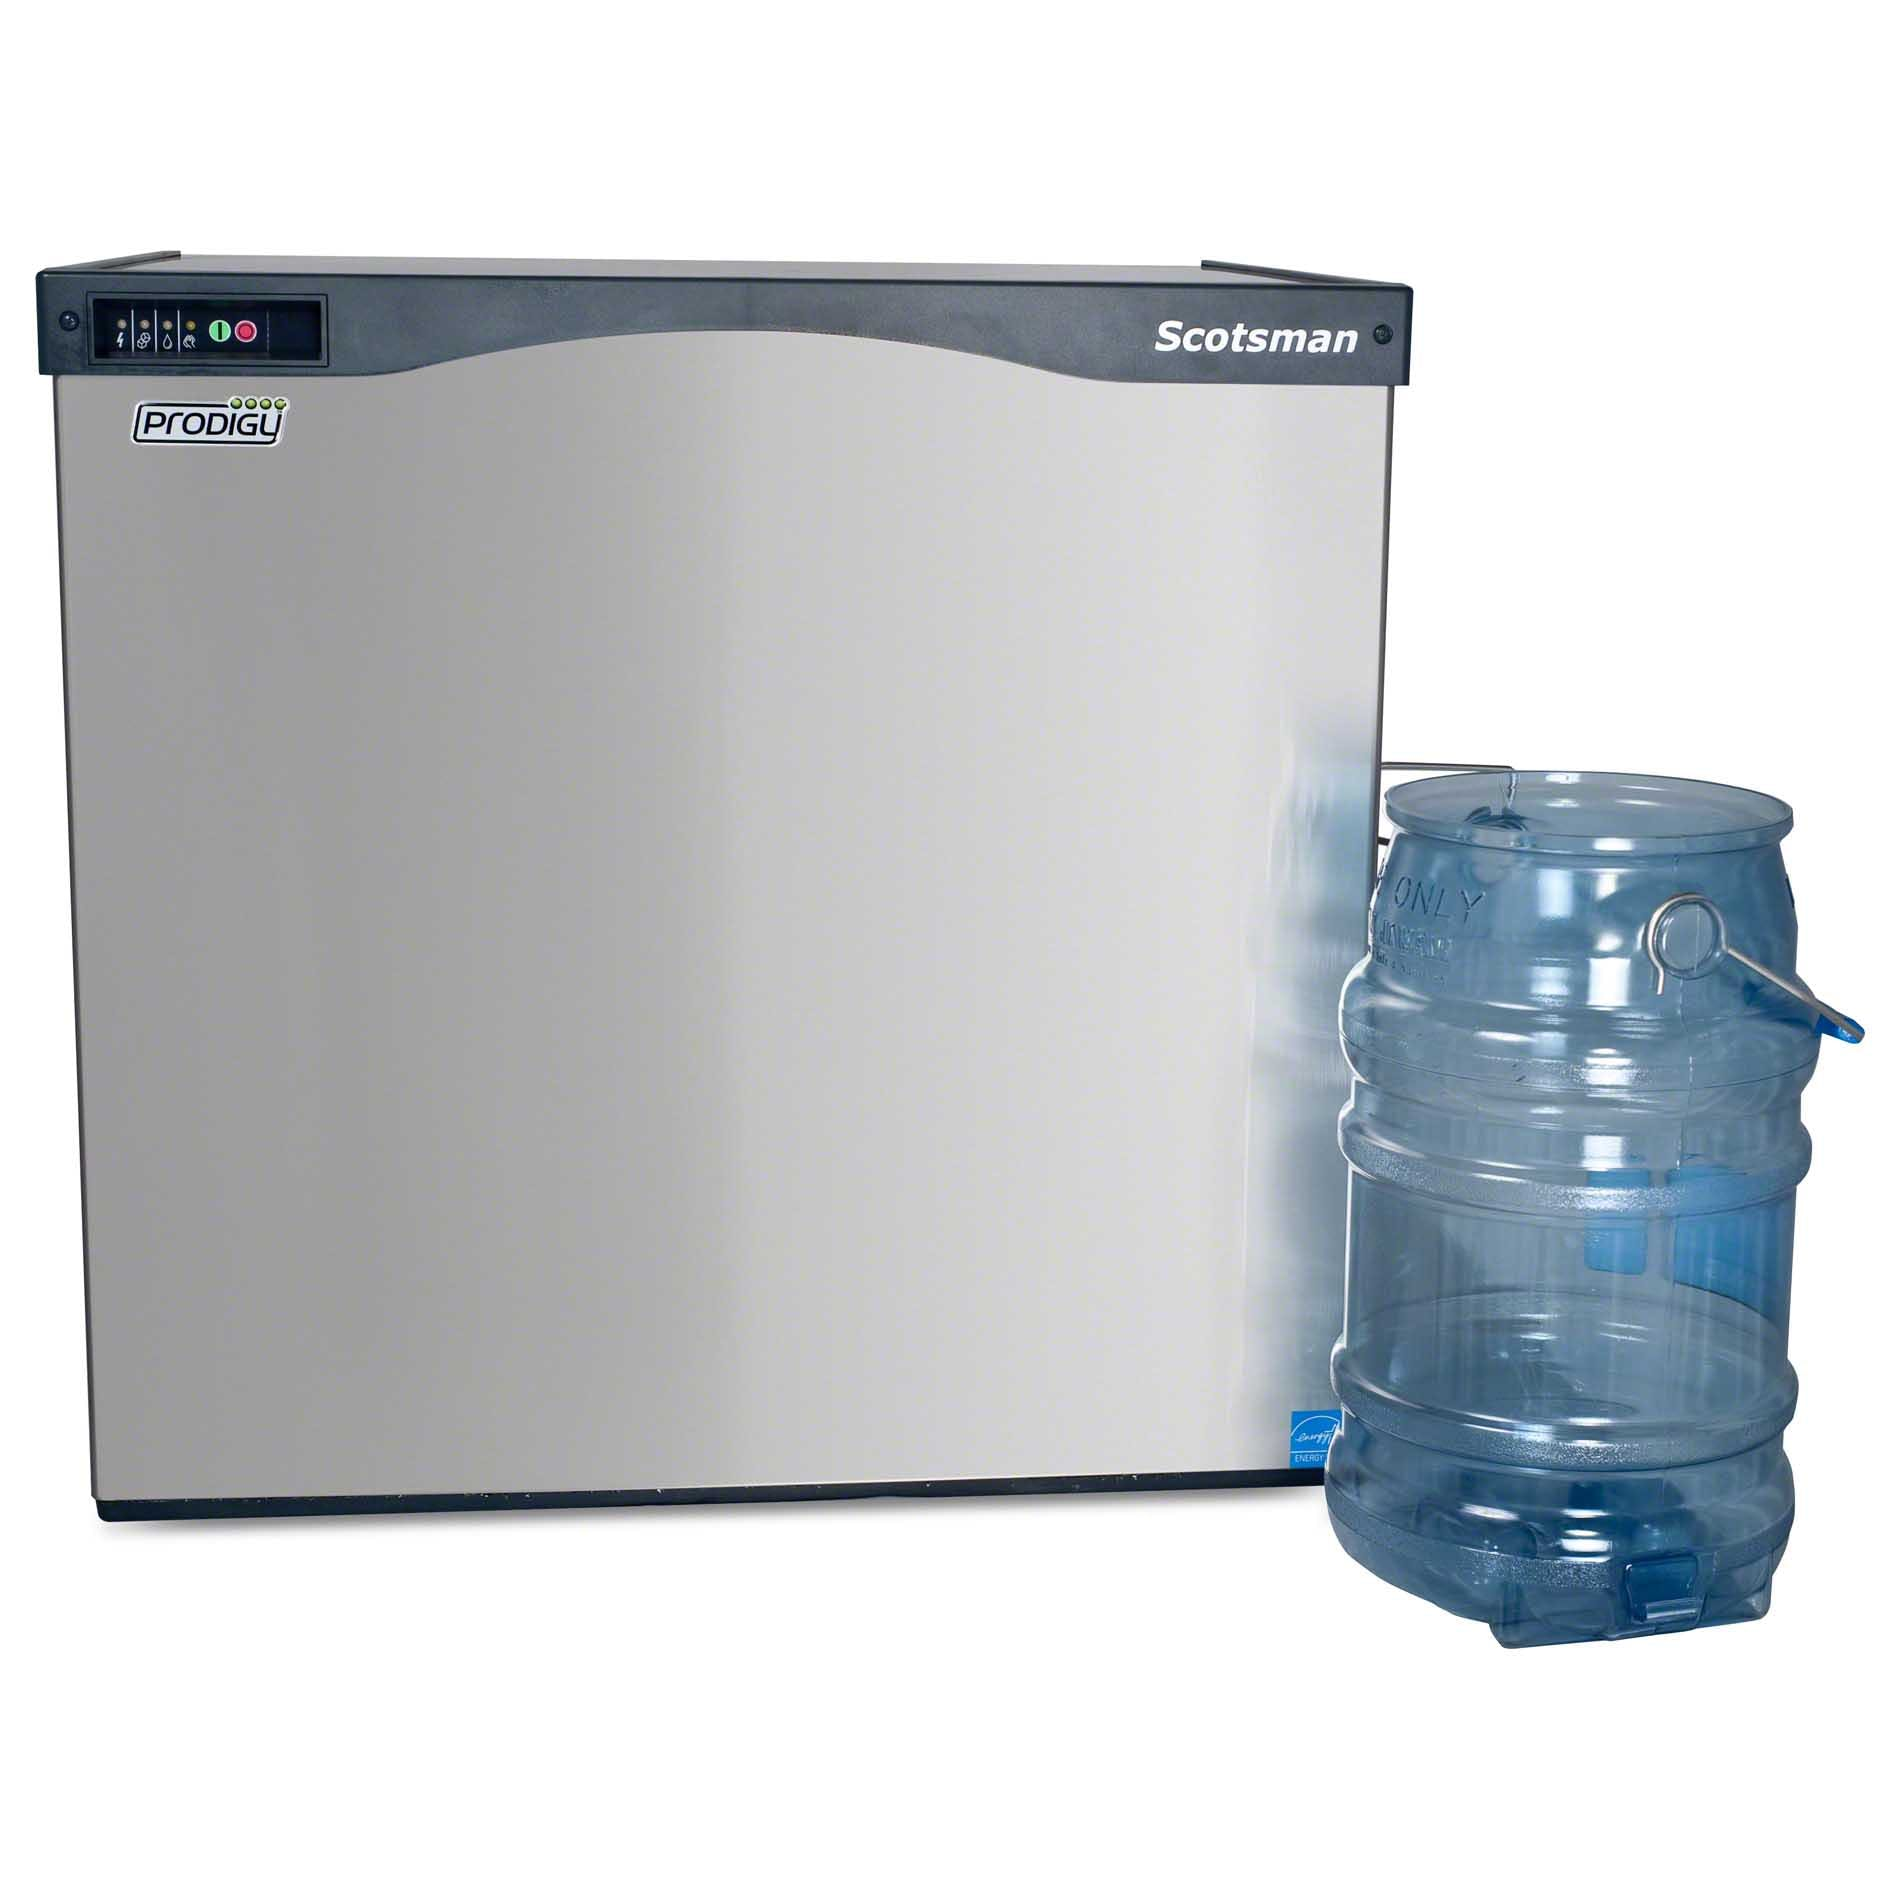 Scotsman - C1030MA-3A 1077 lb Full Size Cube Ice Machine - Prodigy Series Ice machine sold by Food Service Warehouse